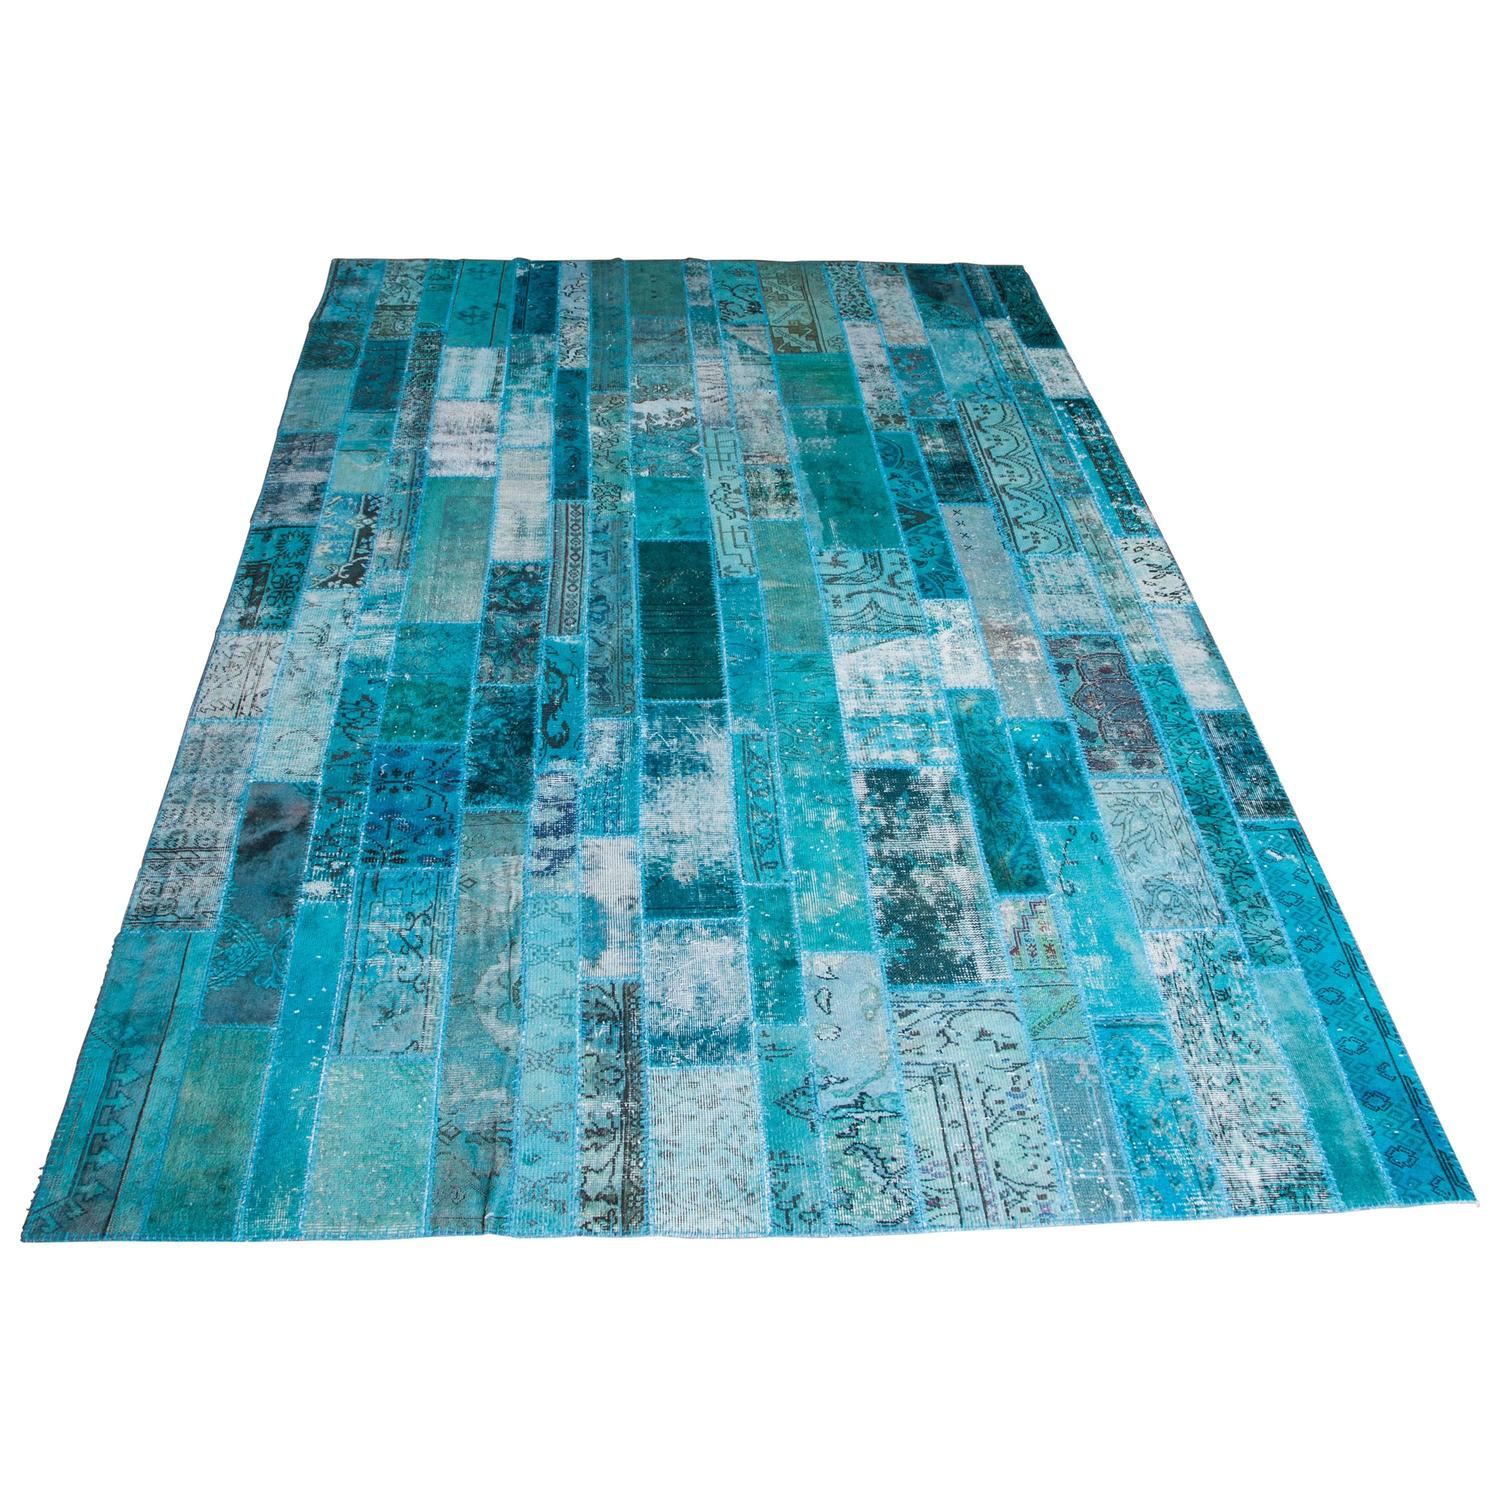 Teal Turkish Kilim Patchwork Rug At 1stdibs